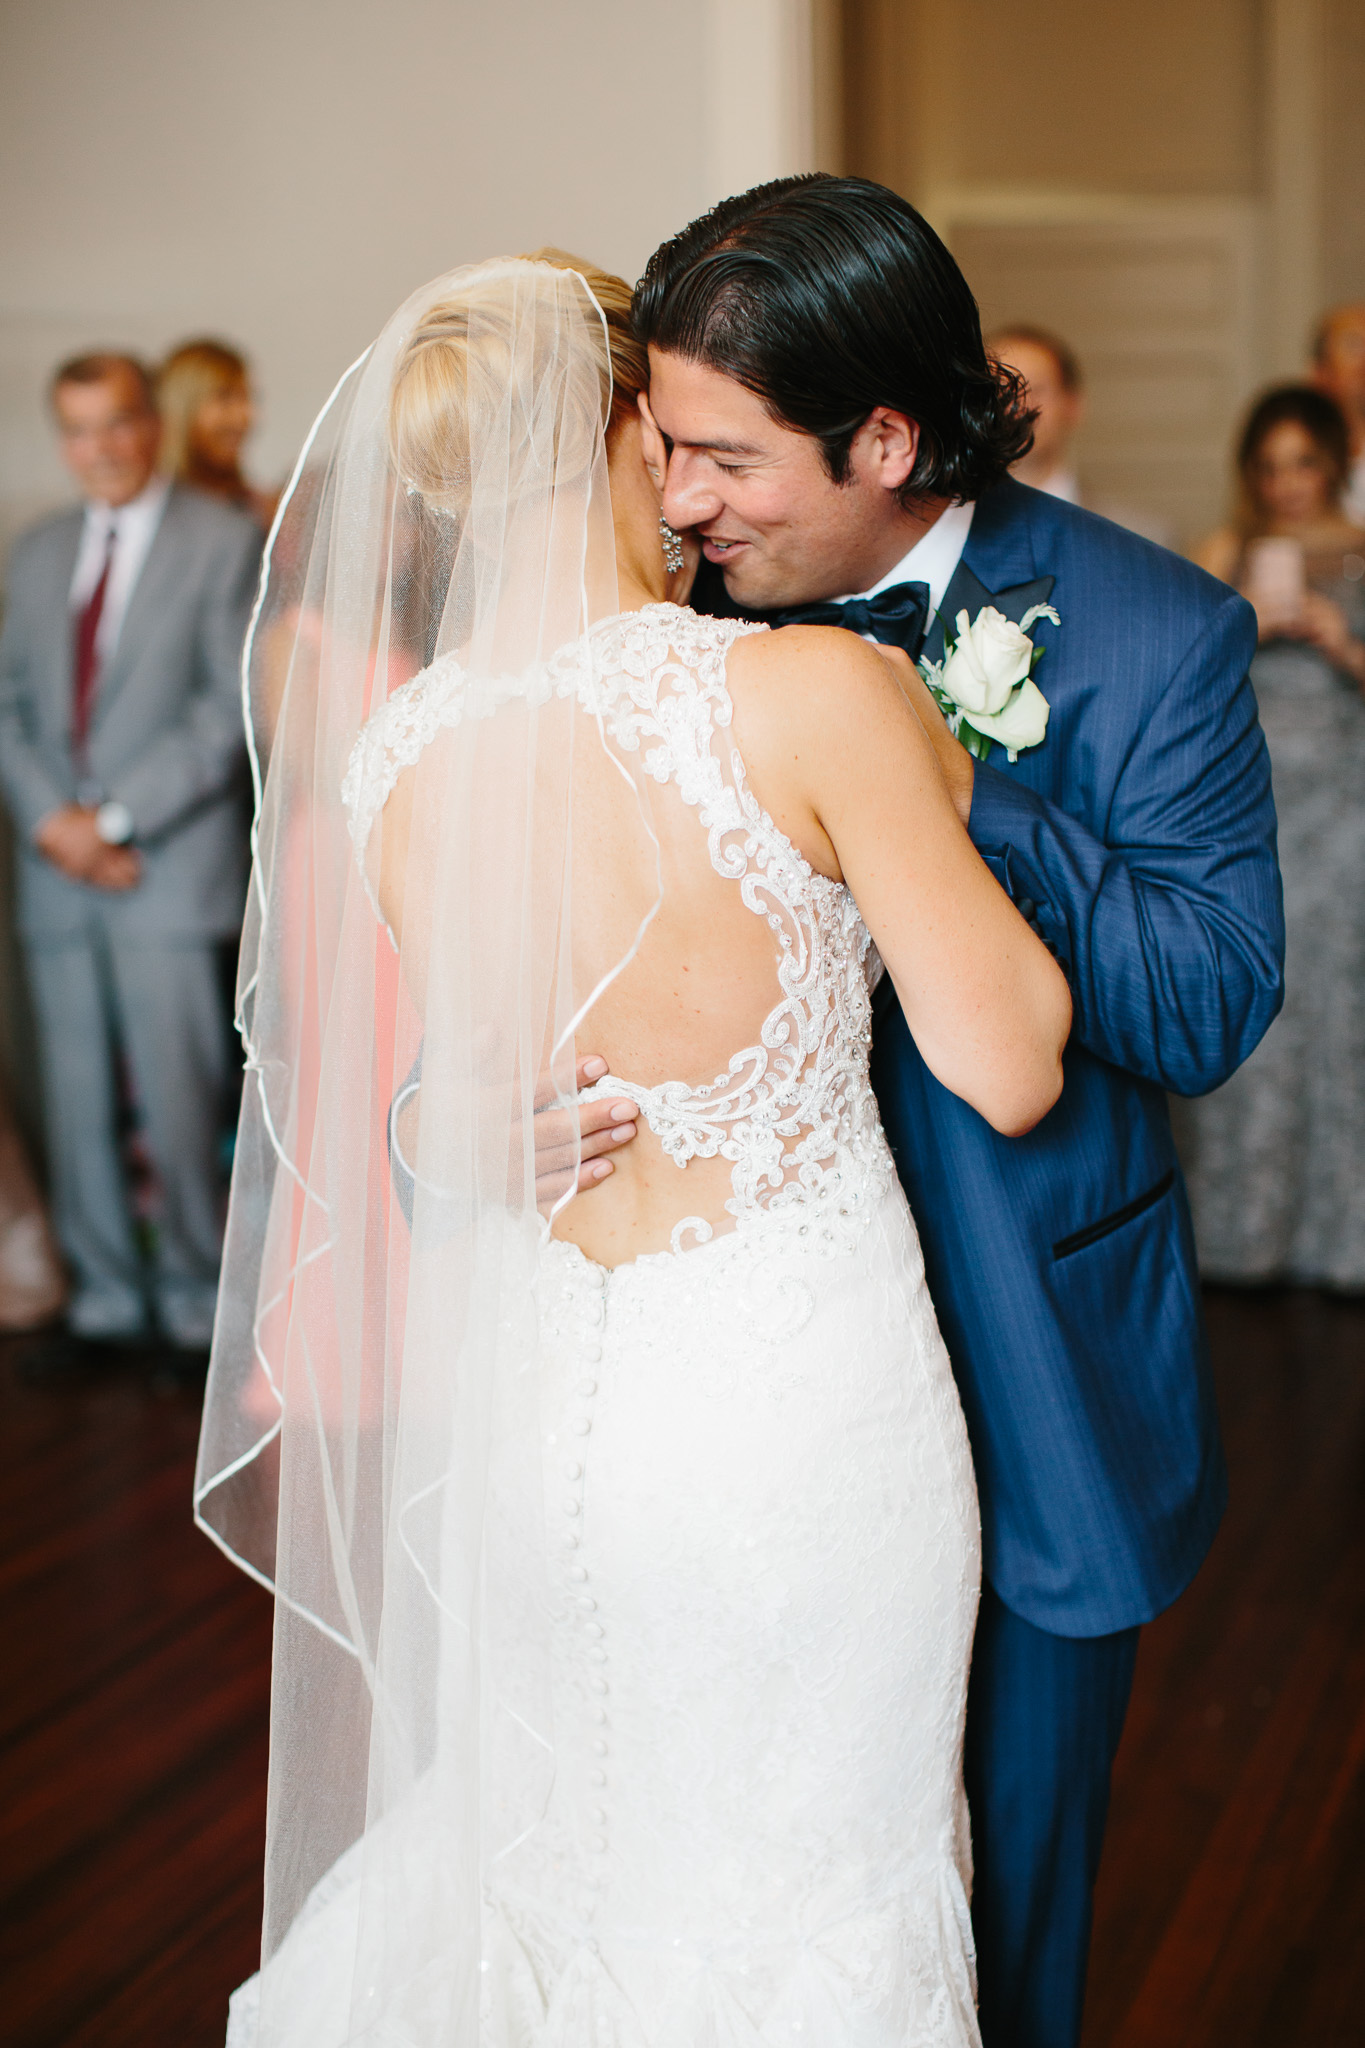 jennichandlerphotography_cariaswedding_WEB-581.jpg